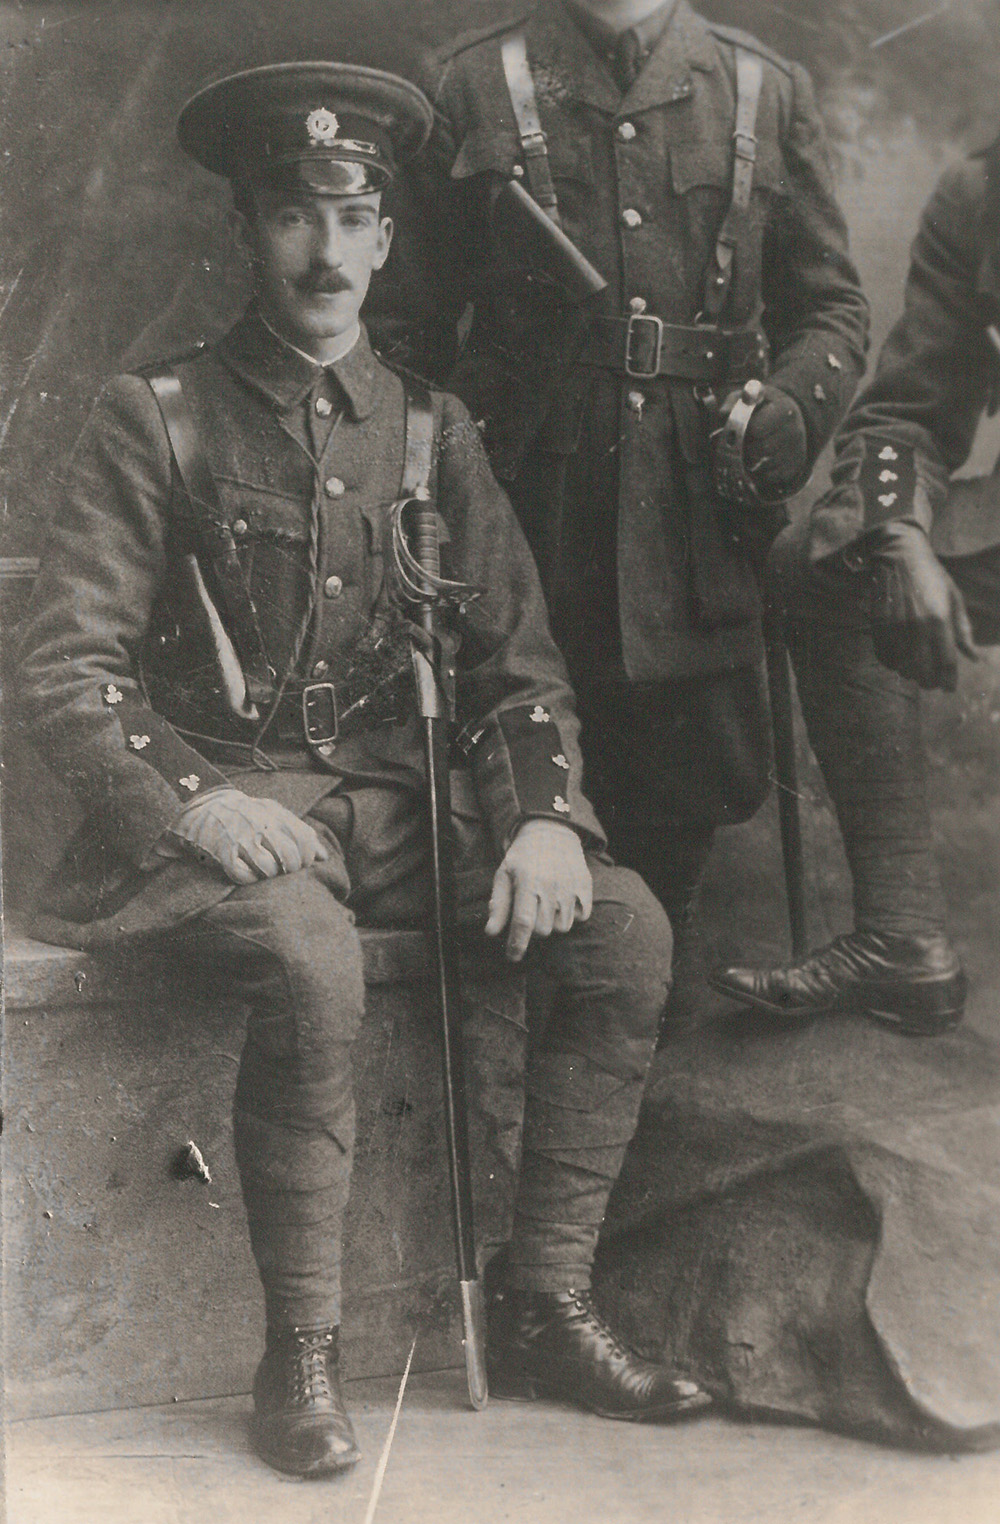 black-and-white picture segment, showing seated Edward 'Ned' Daly in military uniform